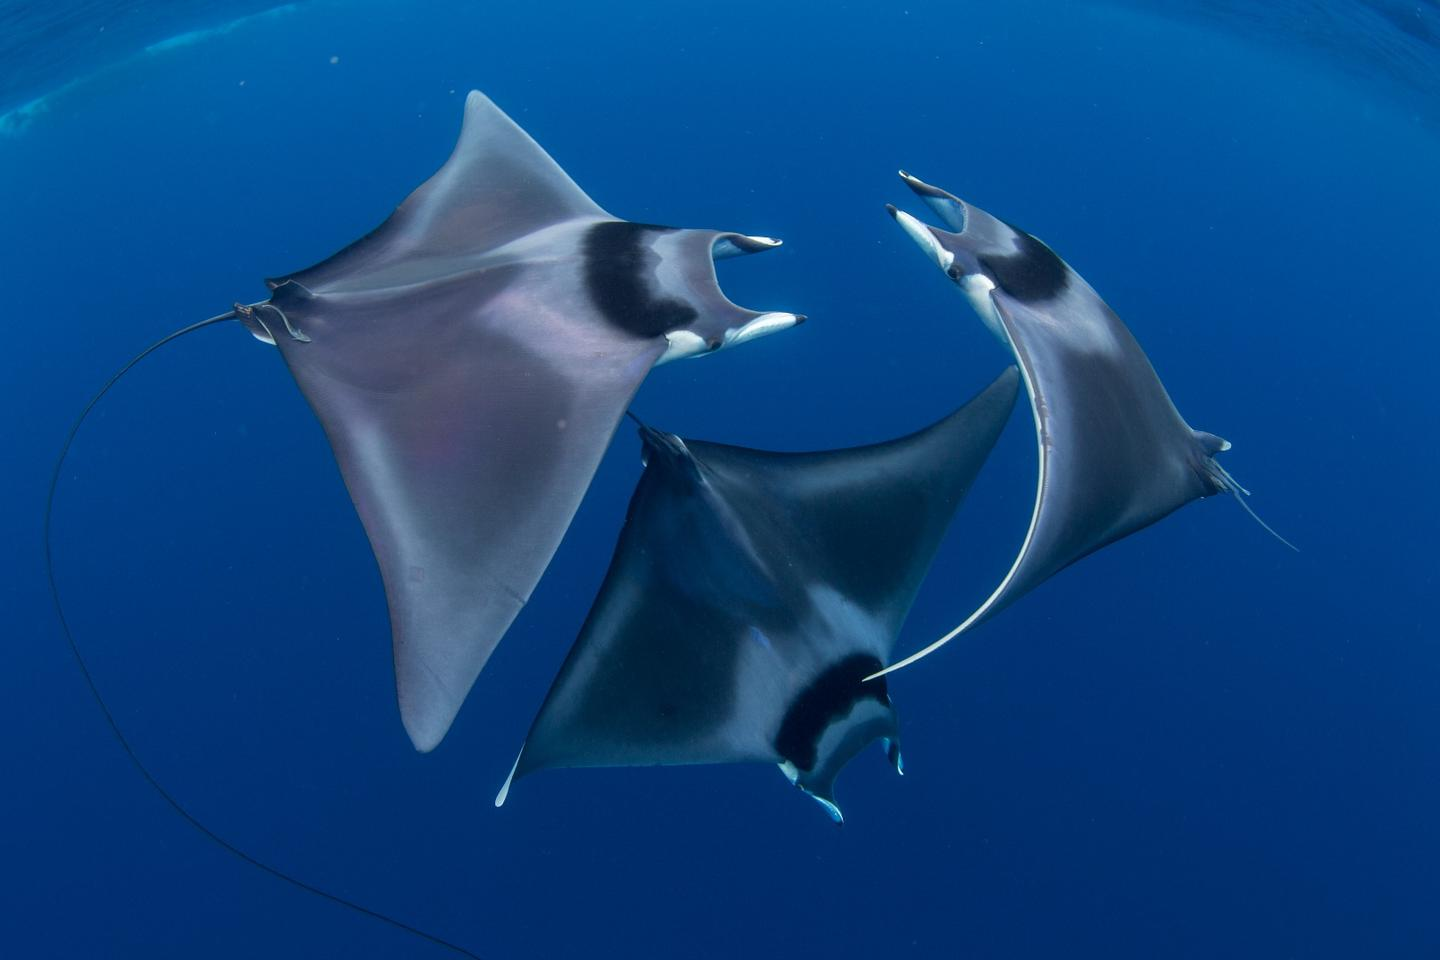 The overall winning photograph, a rarely observed courtship ritual between three devil rays